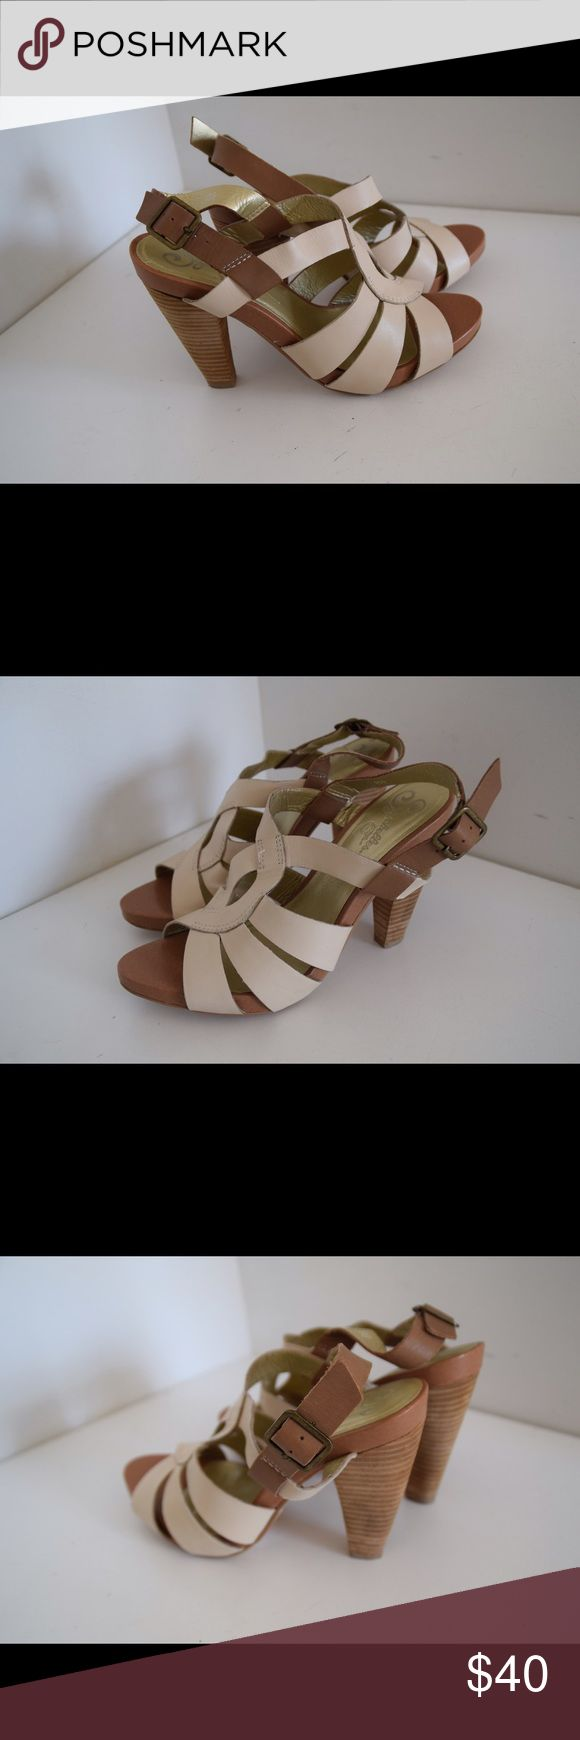 "Seychelles chunky heeled sandals Seychelles heeled sandals Leather upper. Off white/cream color. 8 1/2. Chunky heels 4"" Very little wear to soles (pic). In excellent condition! Seychelles Shoes Sandals"